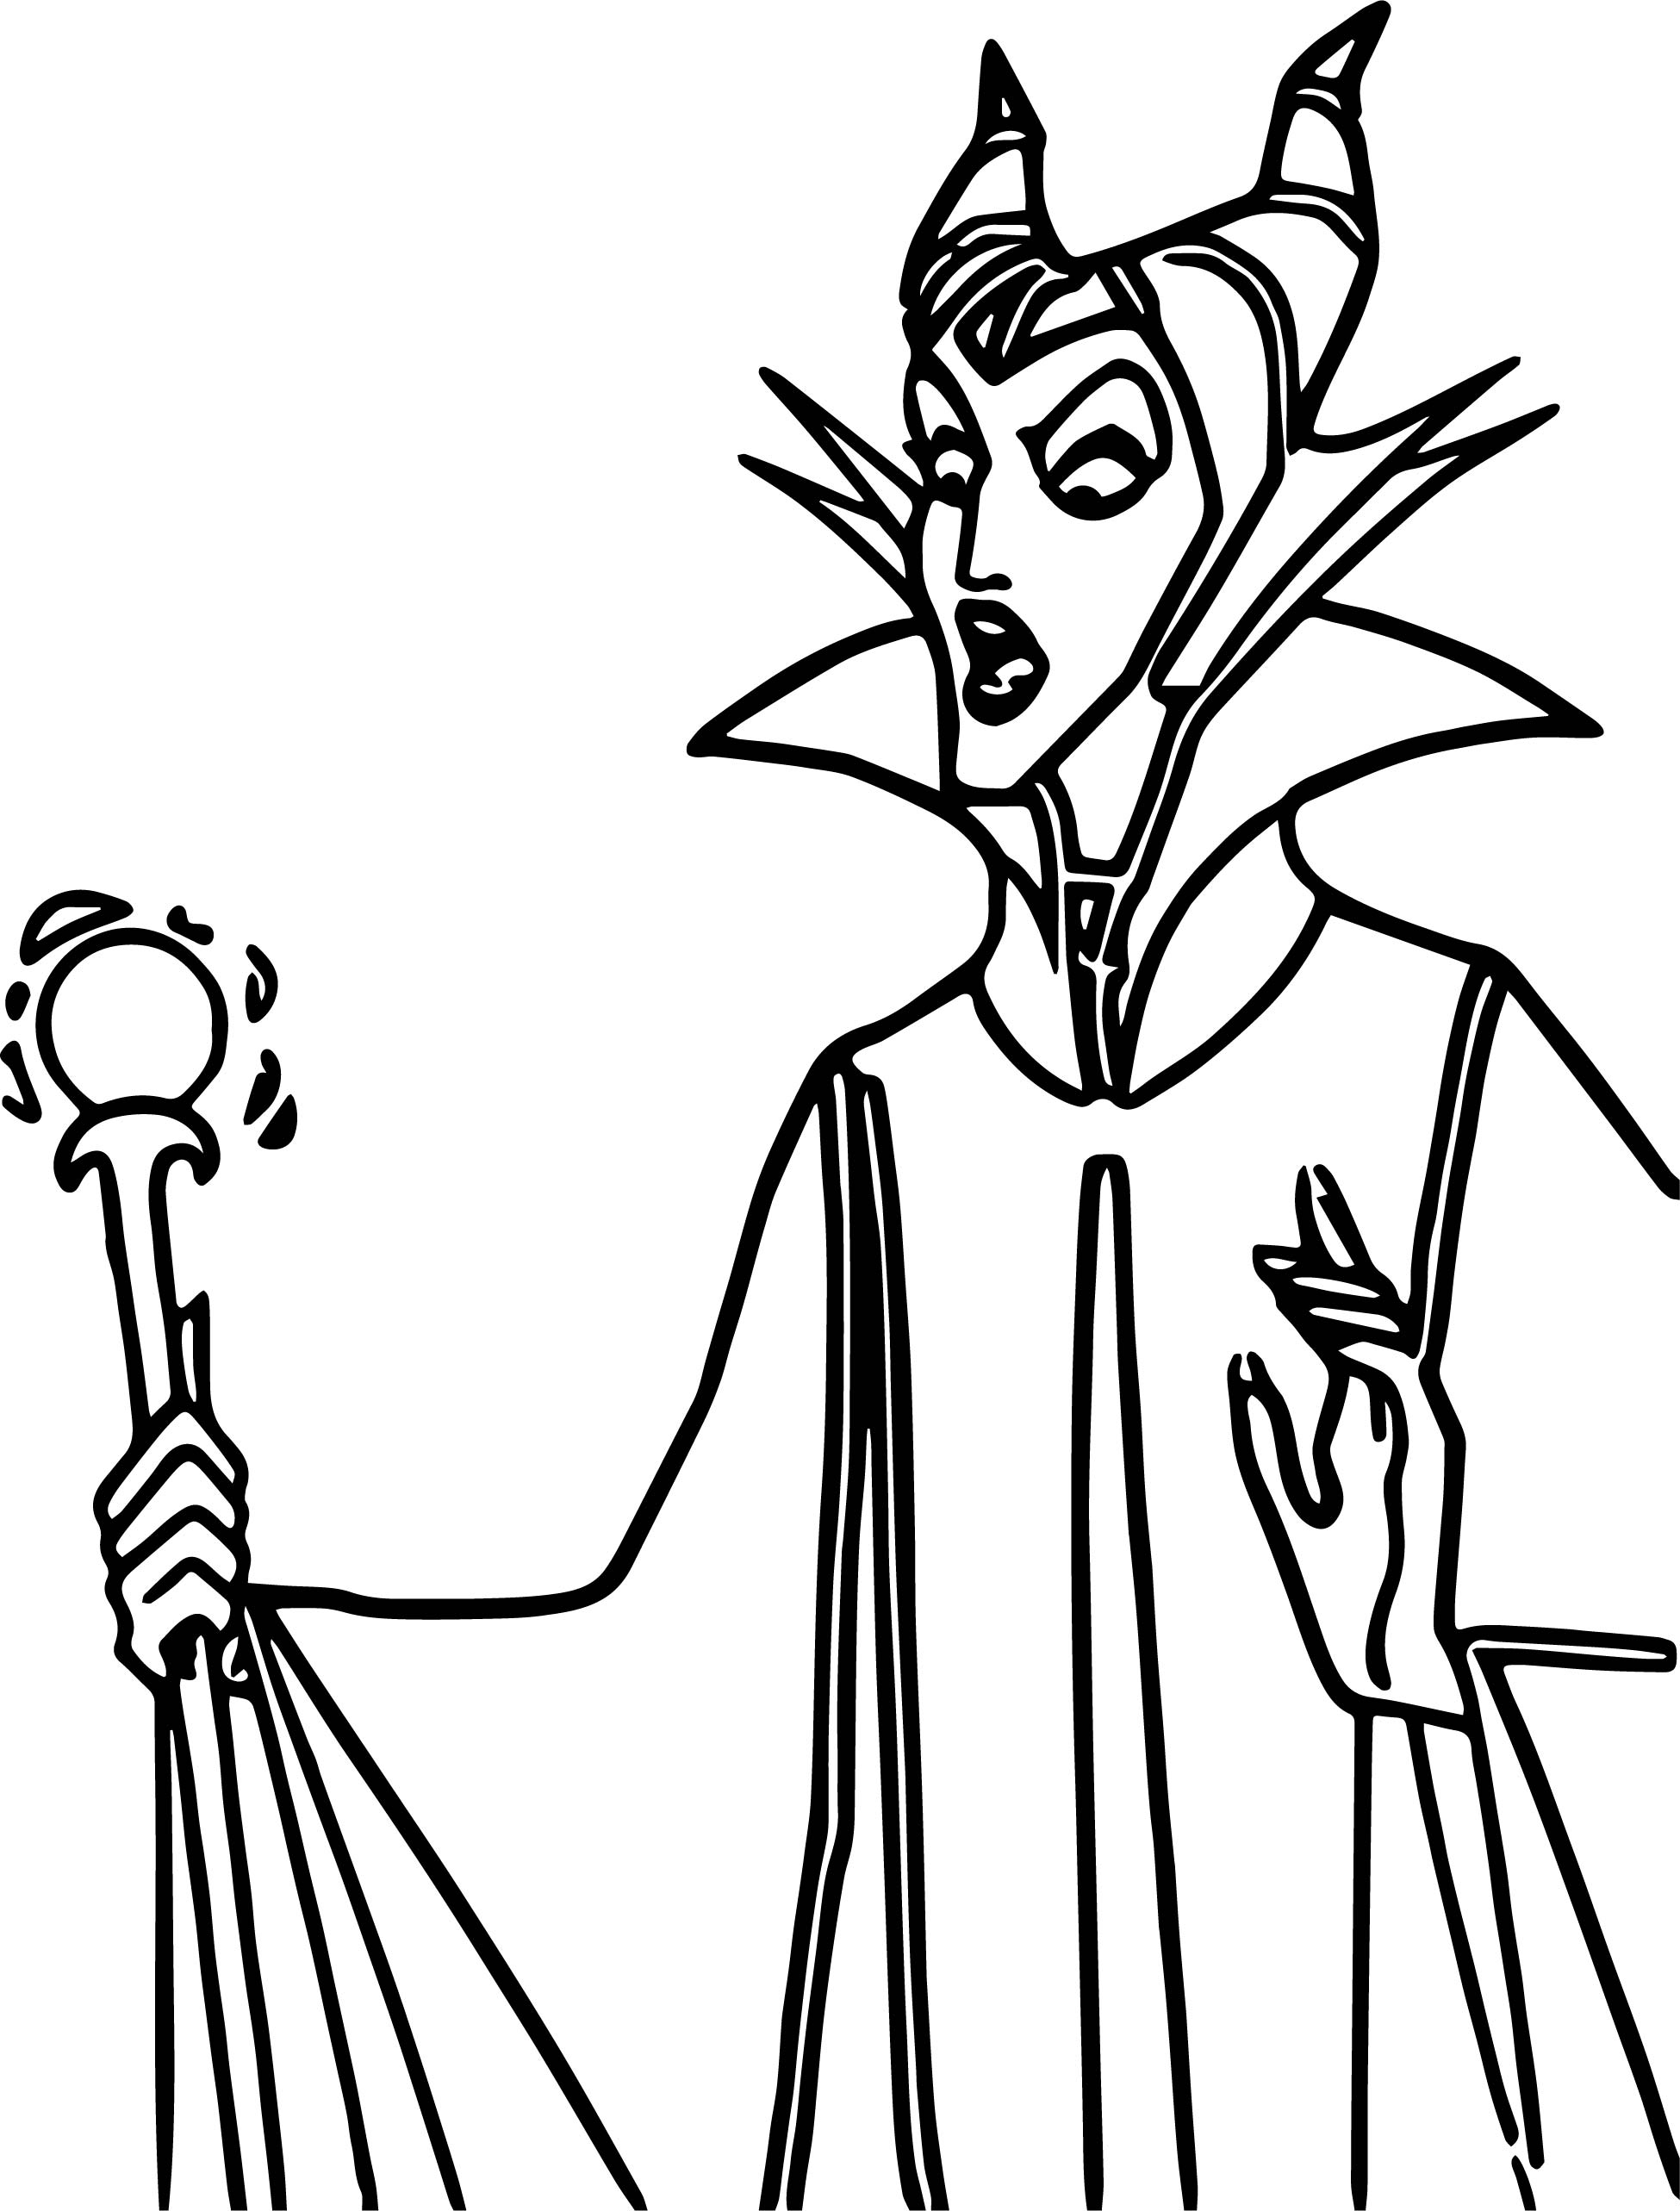 Just Aurora Maleficent Coloring Page